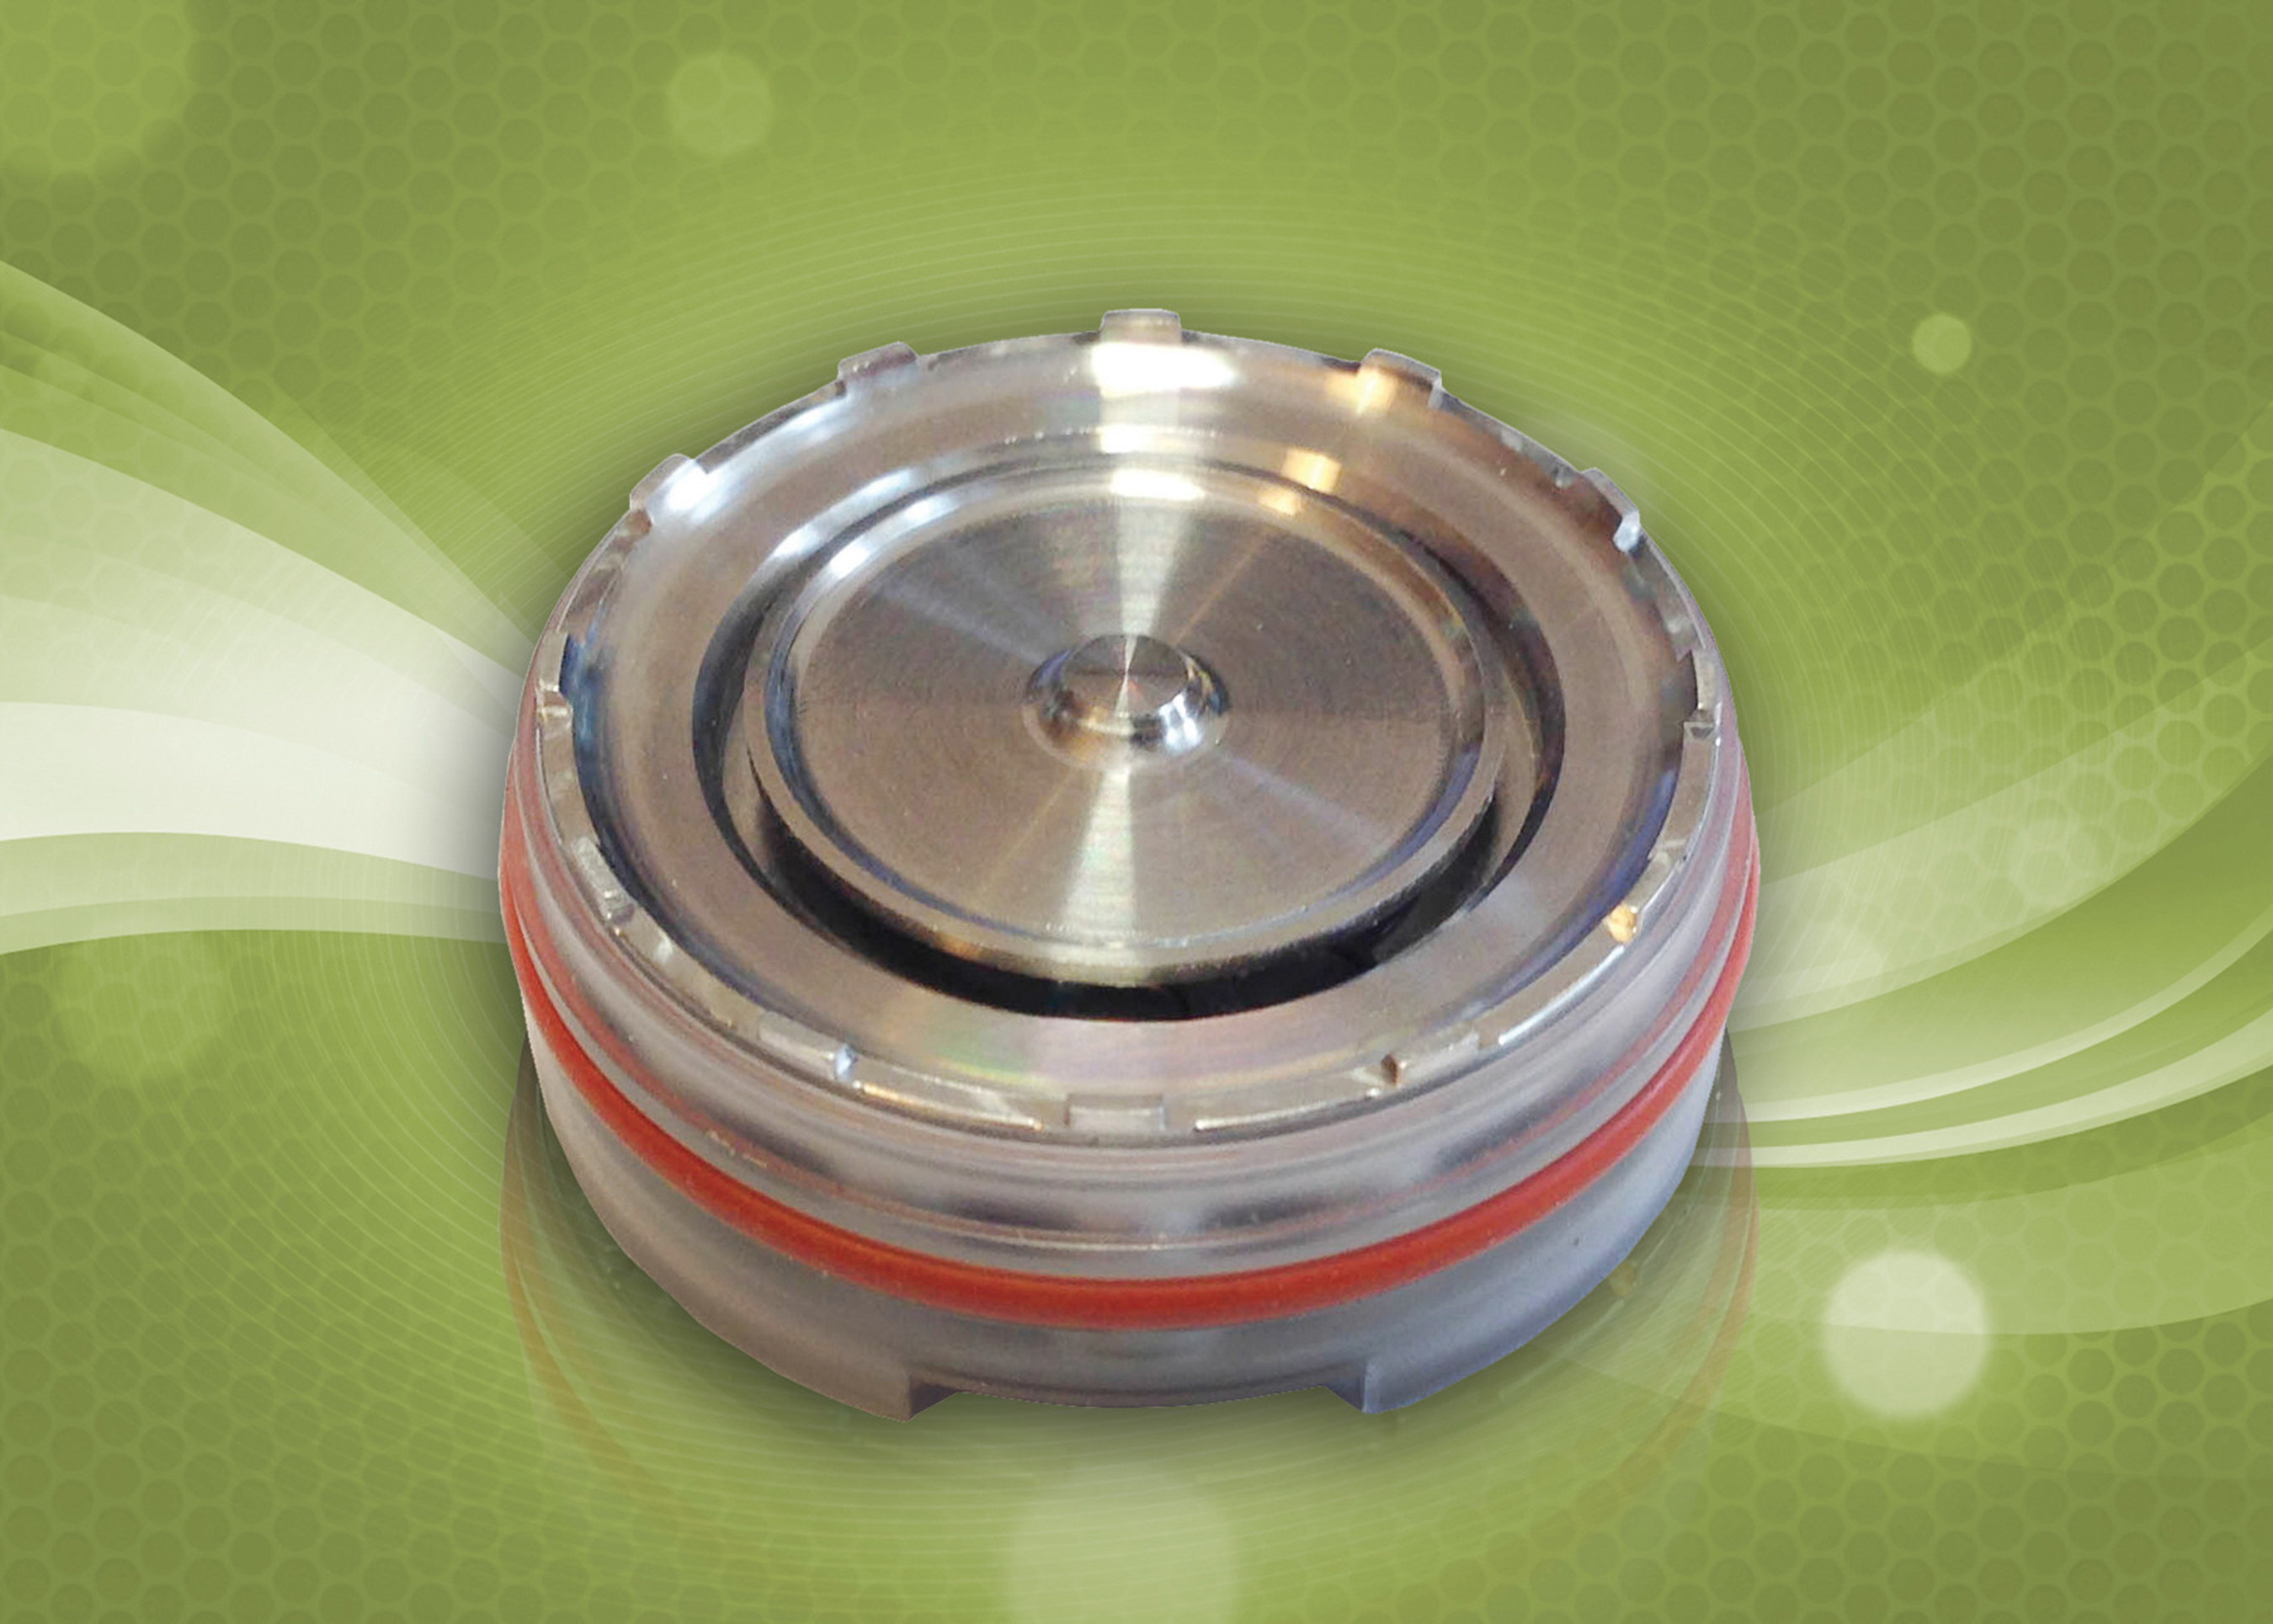 Multi Wheel Miniature Rotary Switch from Elma Provides Accurate One-Finger Control